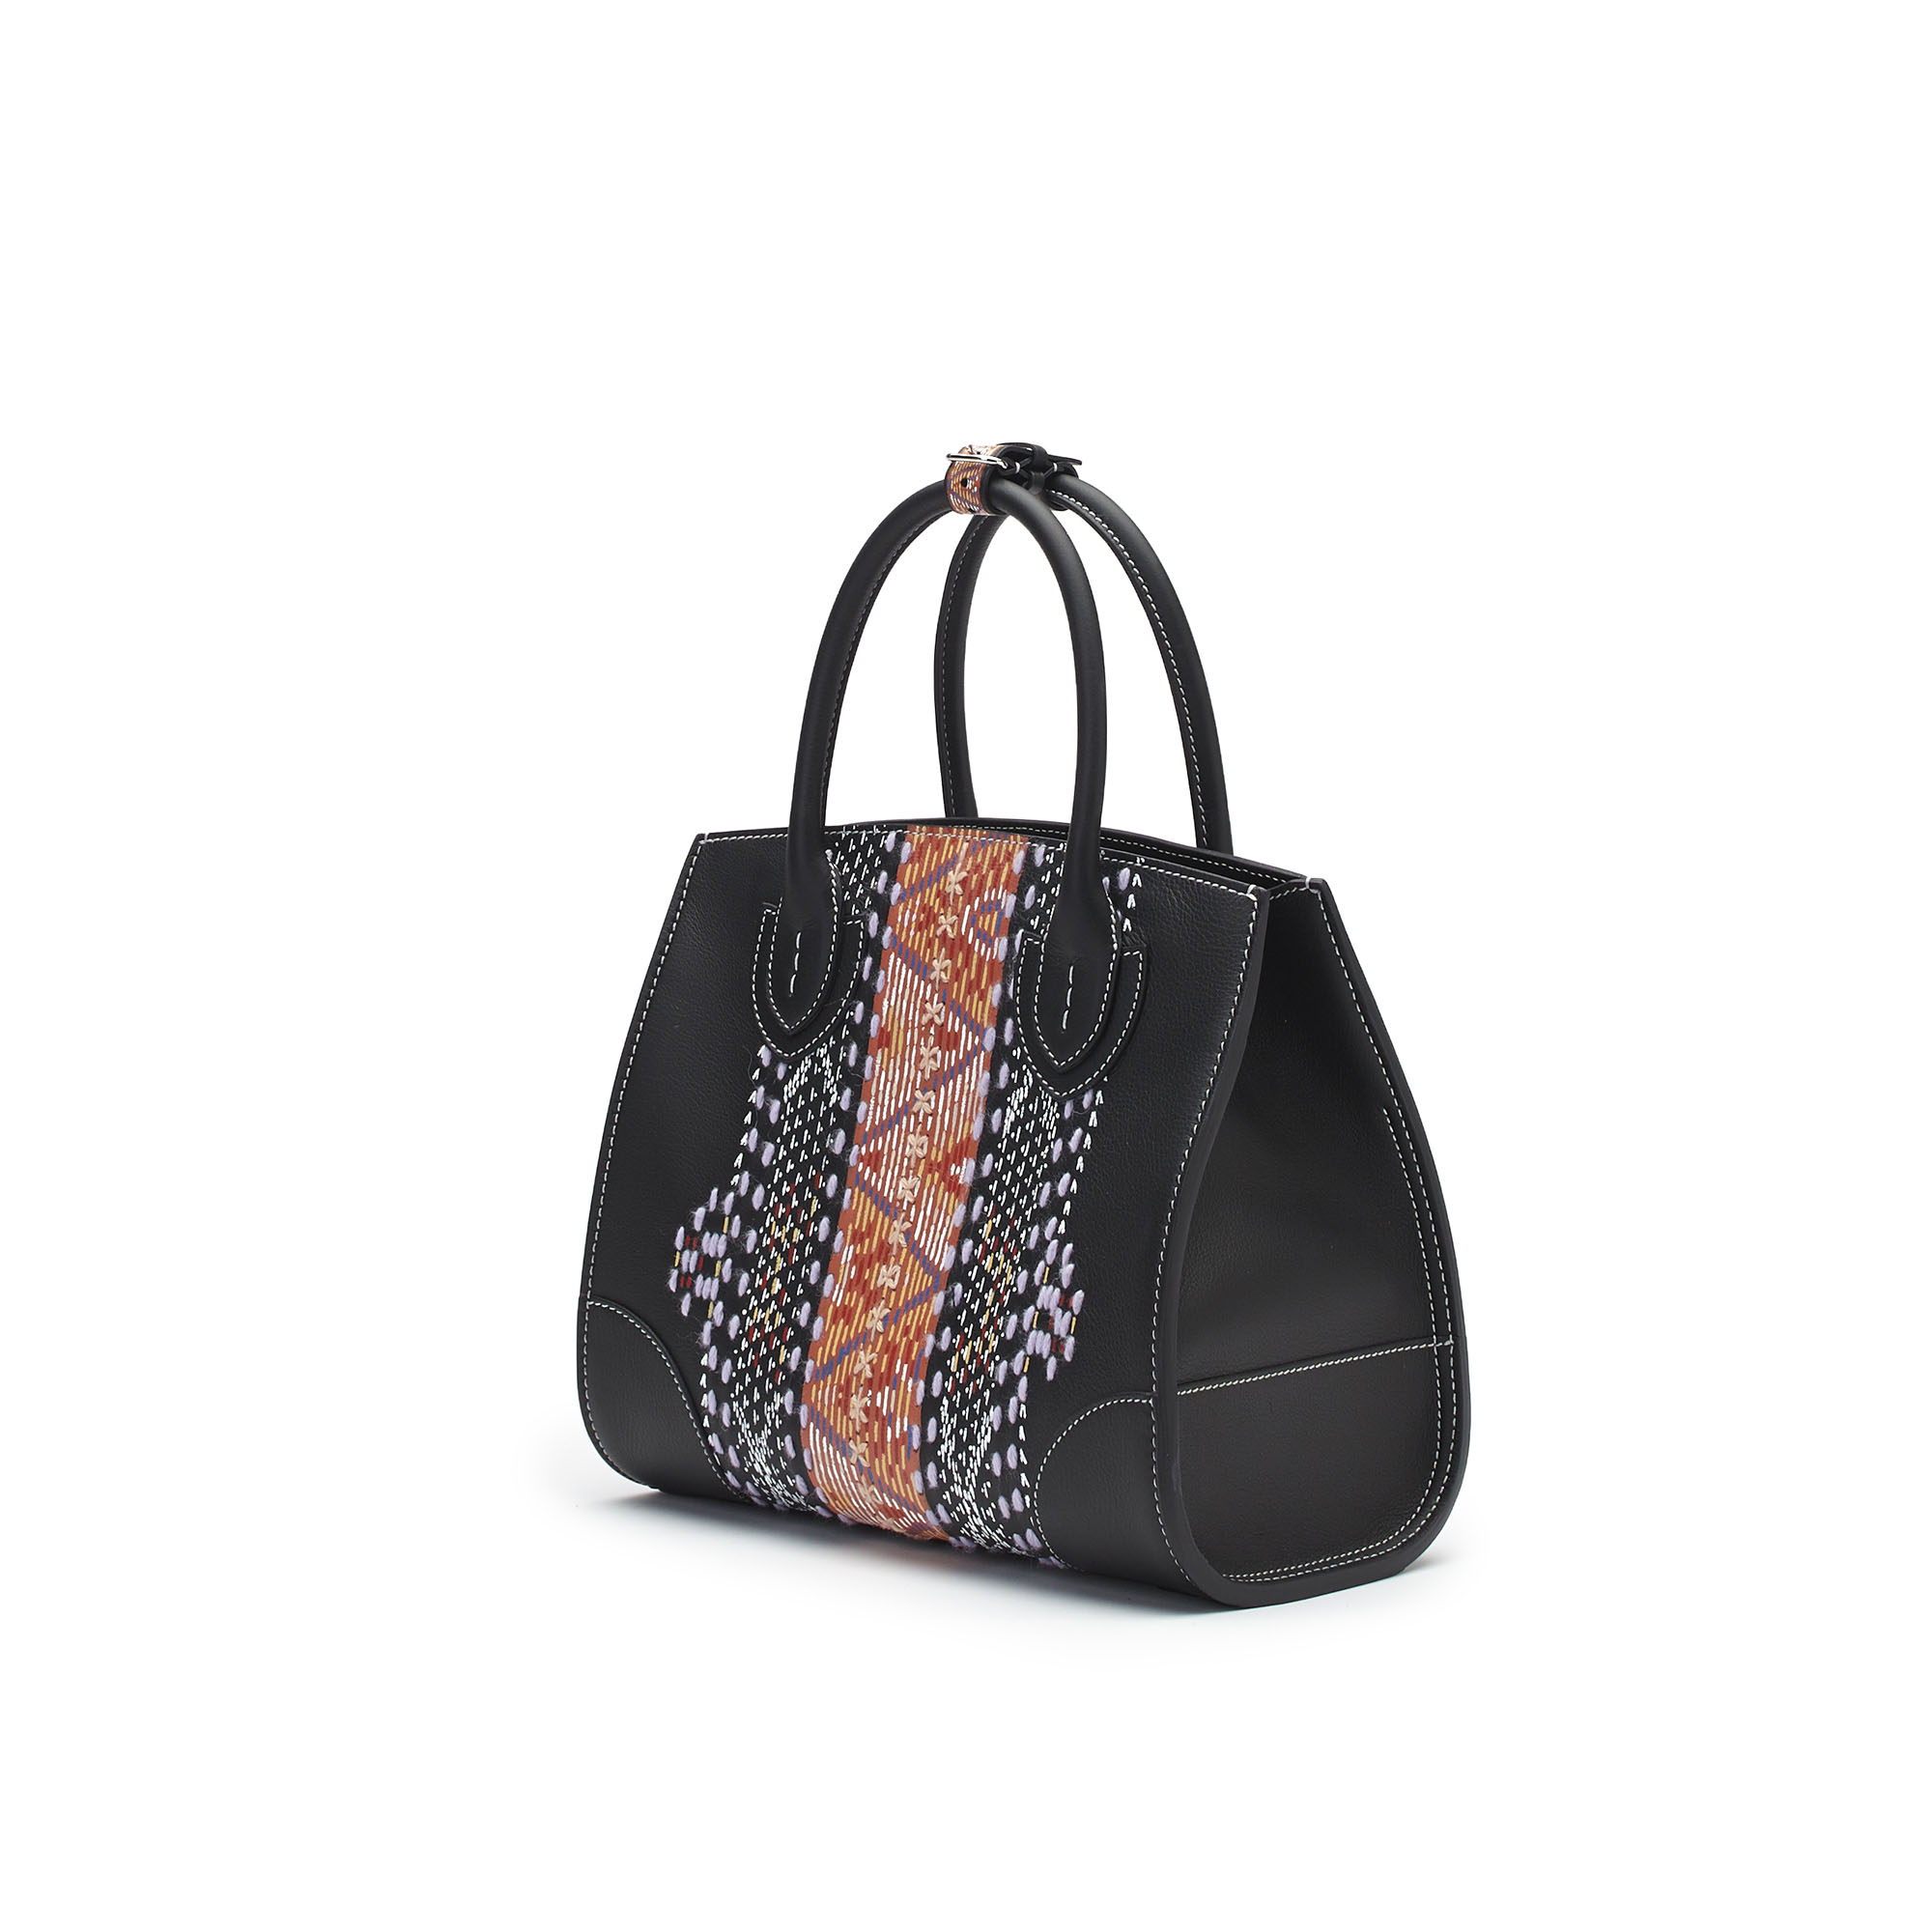 The black soft calf with carpet embroidered and painted by hand Darcy bag by Bertoni 1949 02